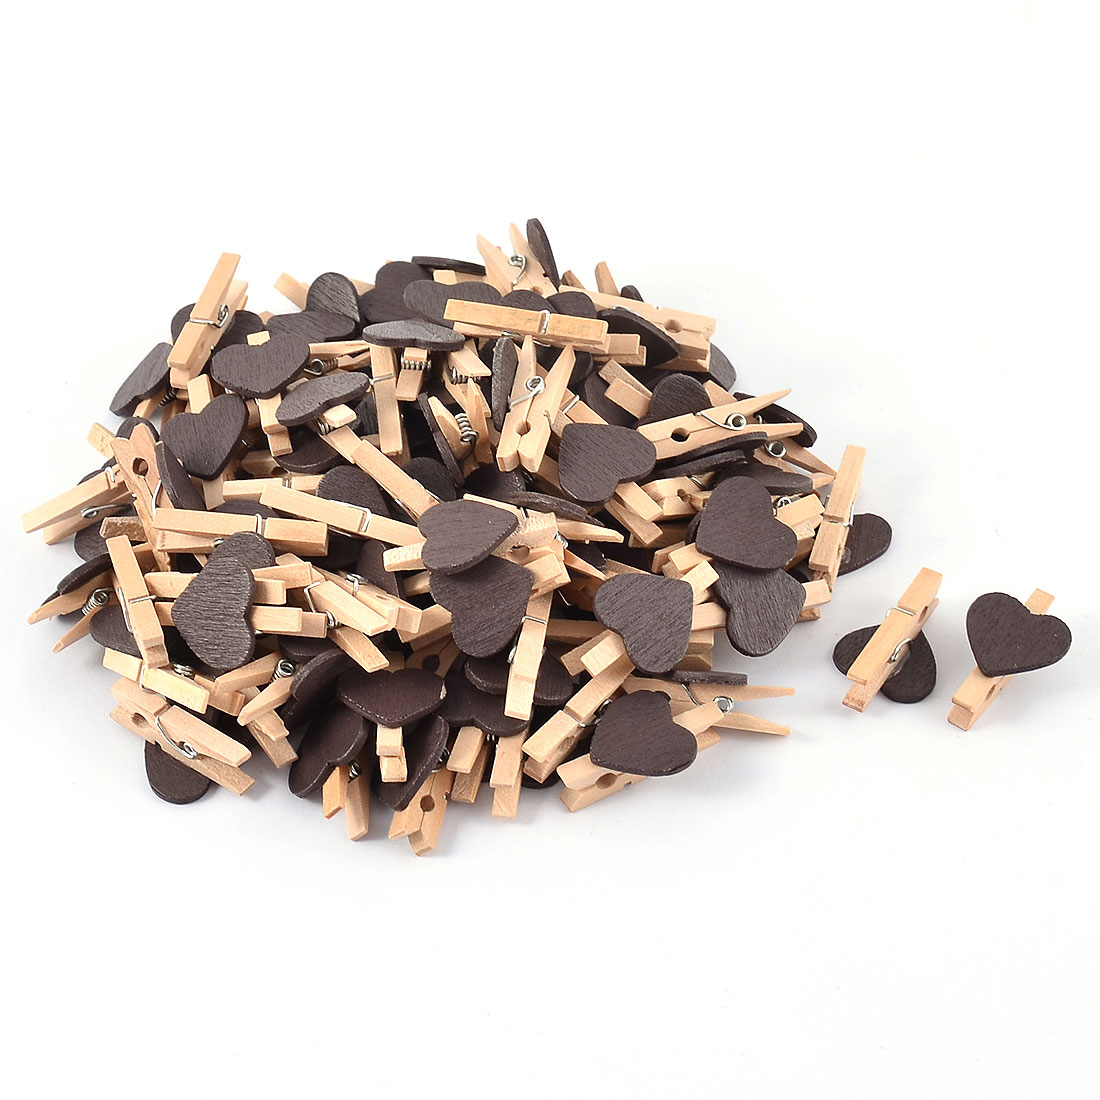 Party Photo Paper DIY Heart Shape Crafts Mini Wooden Clip Pegs Black 100pcs